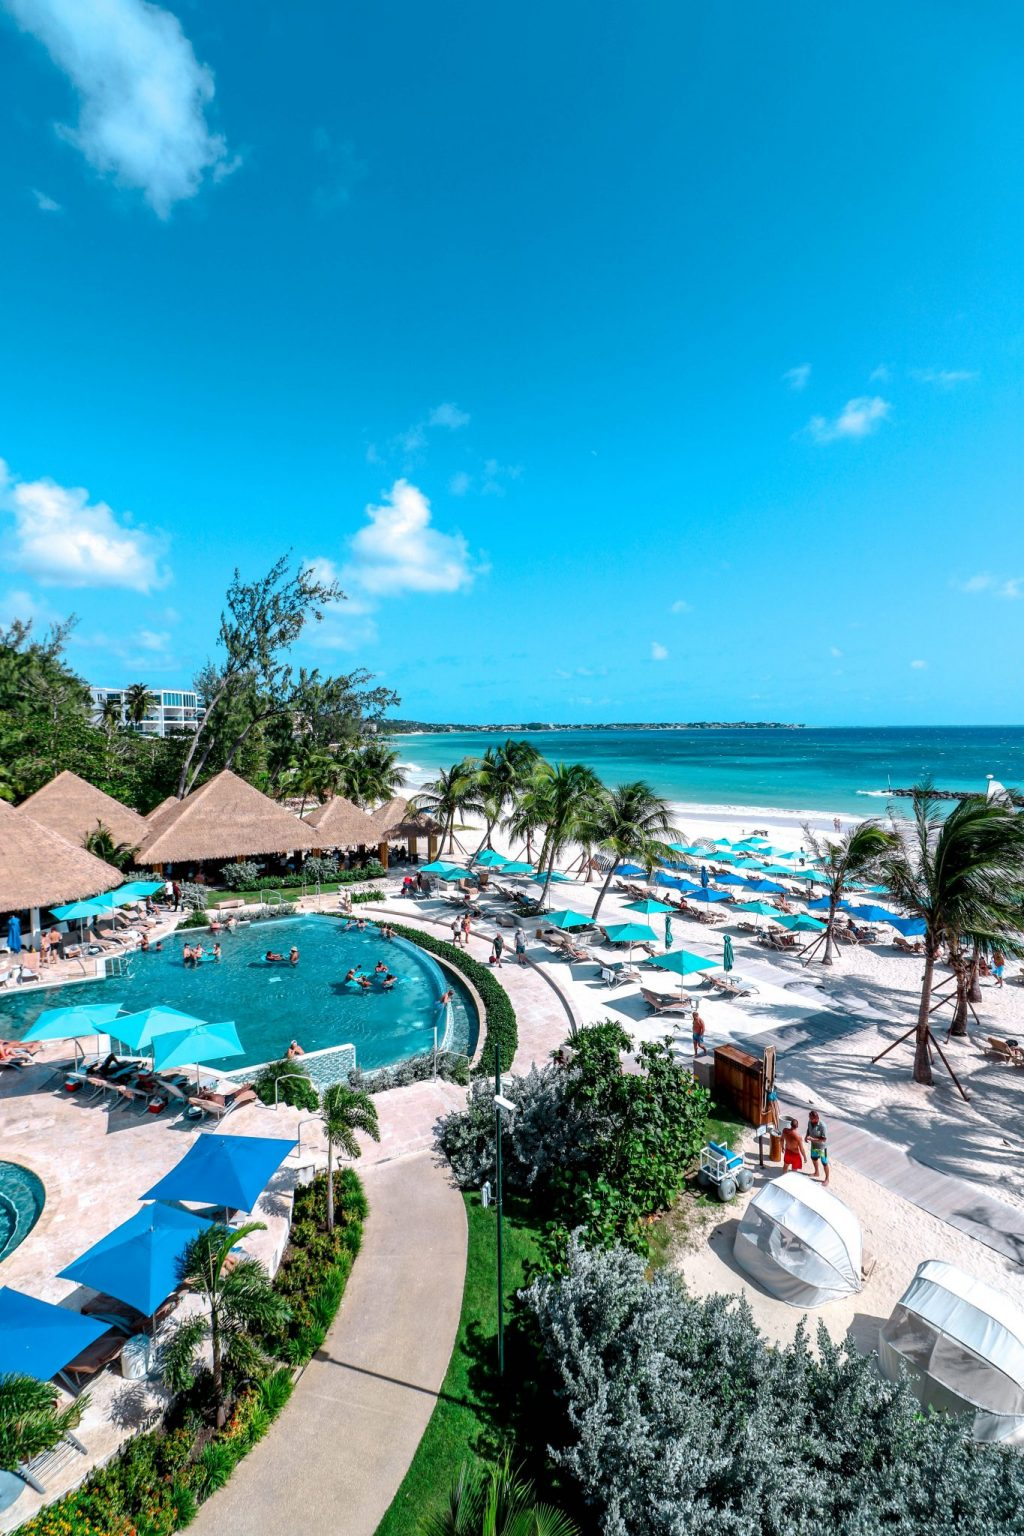 Sandals Royal Barbados The Luxury Vacation You NEED